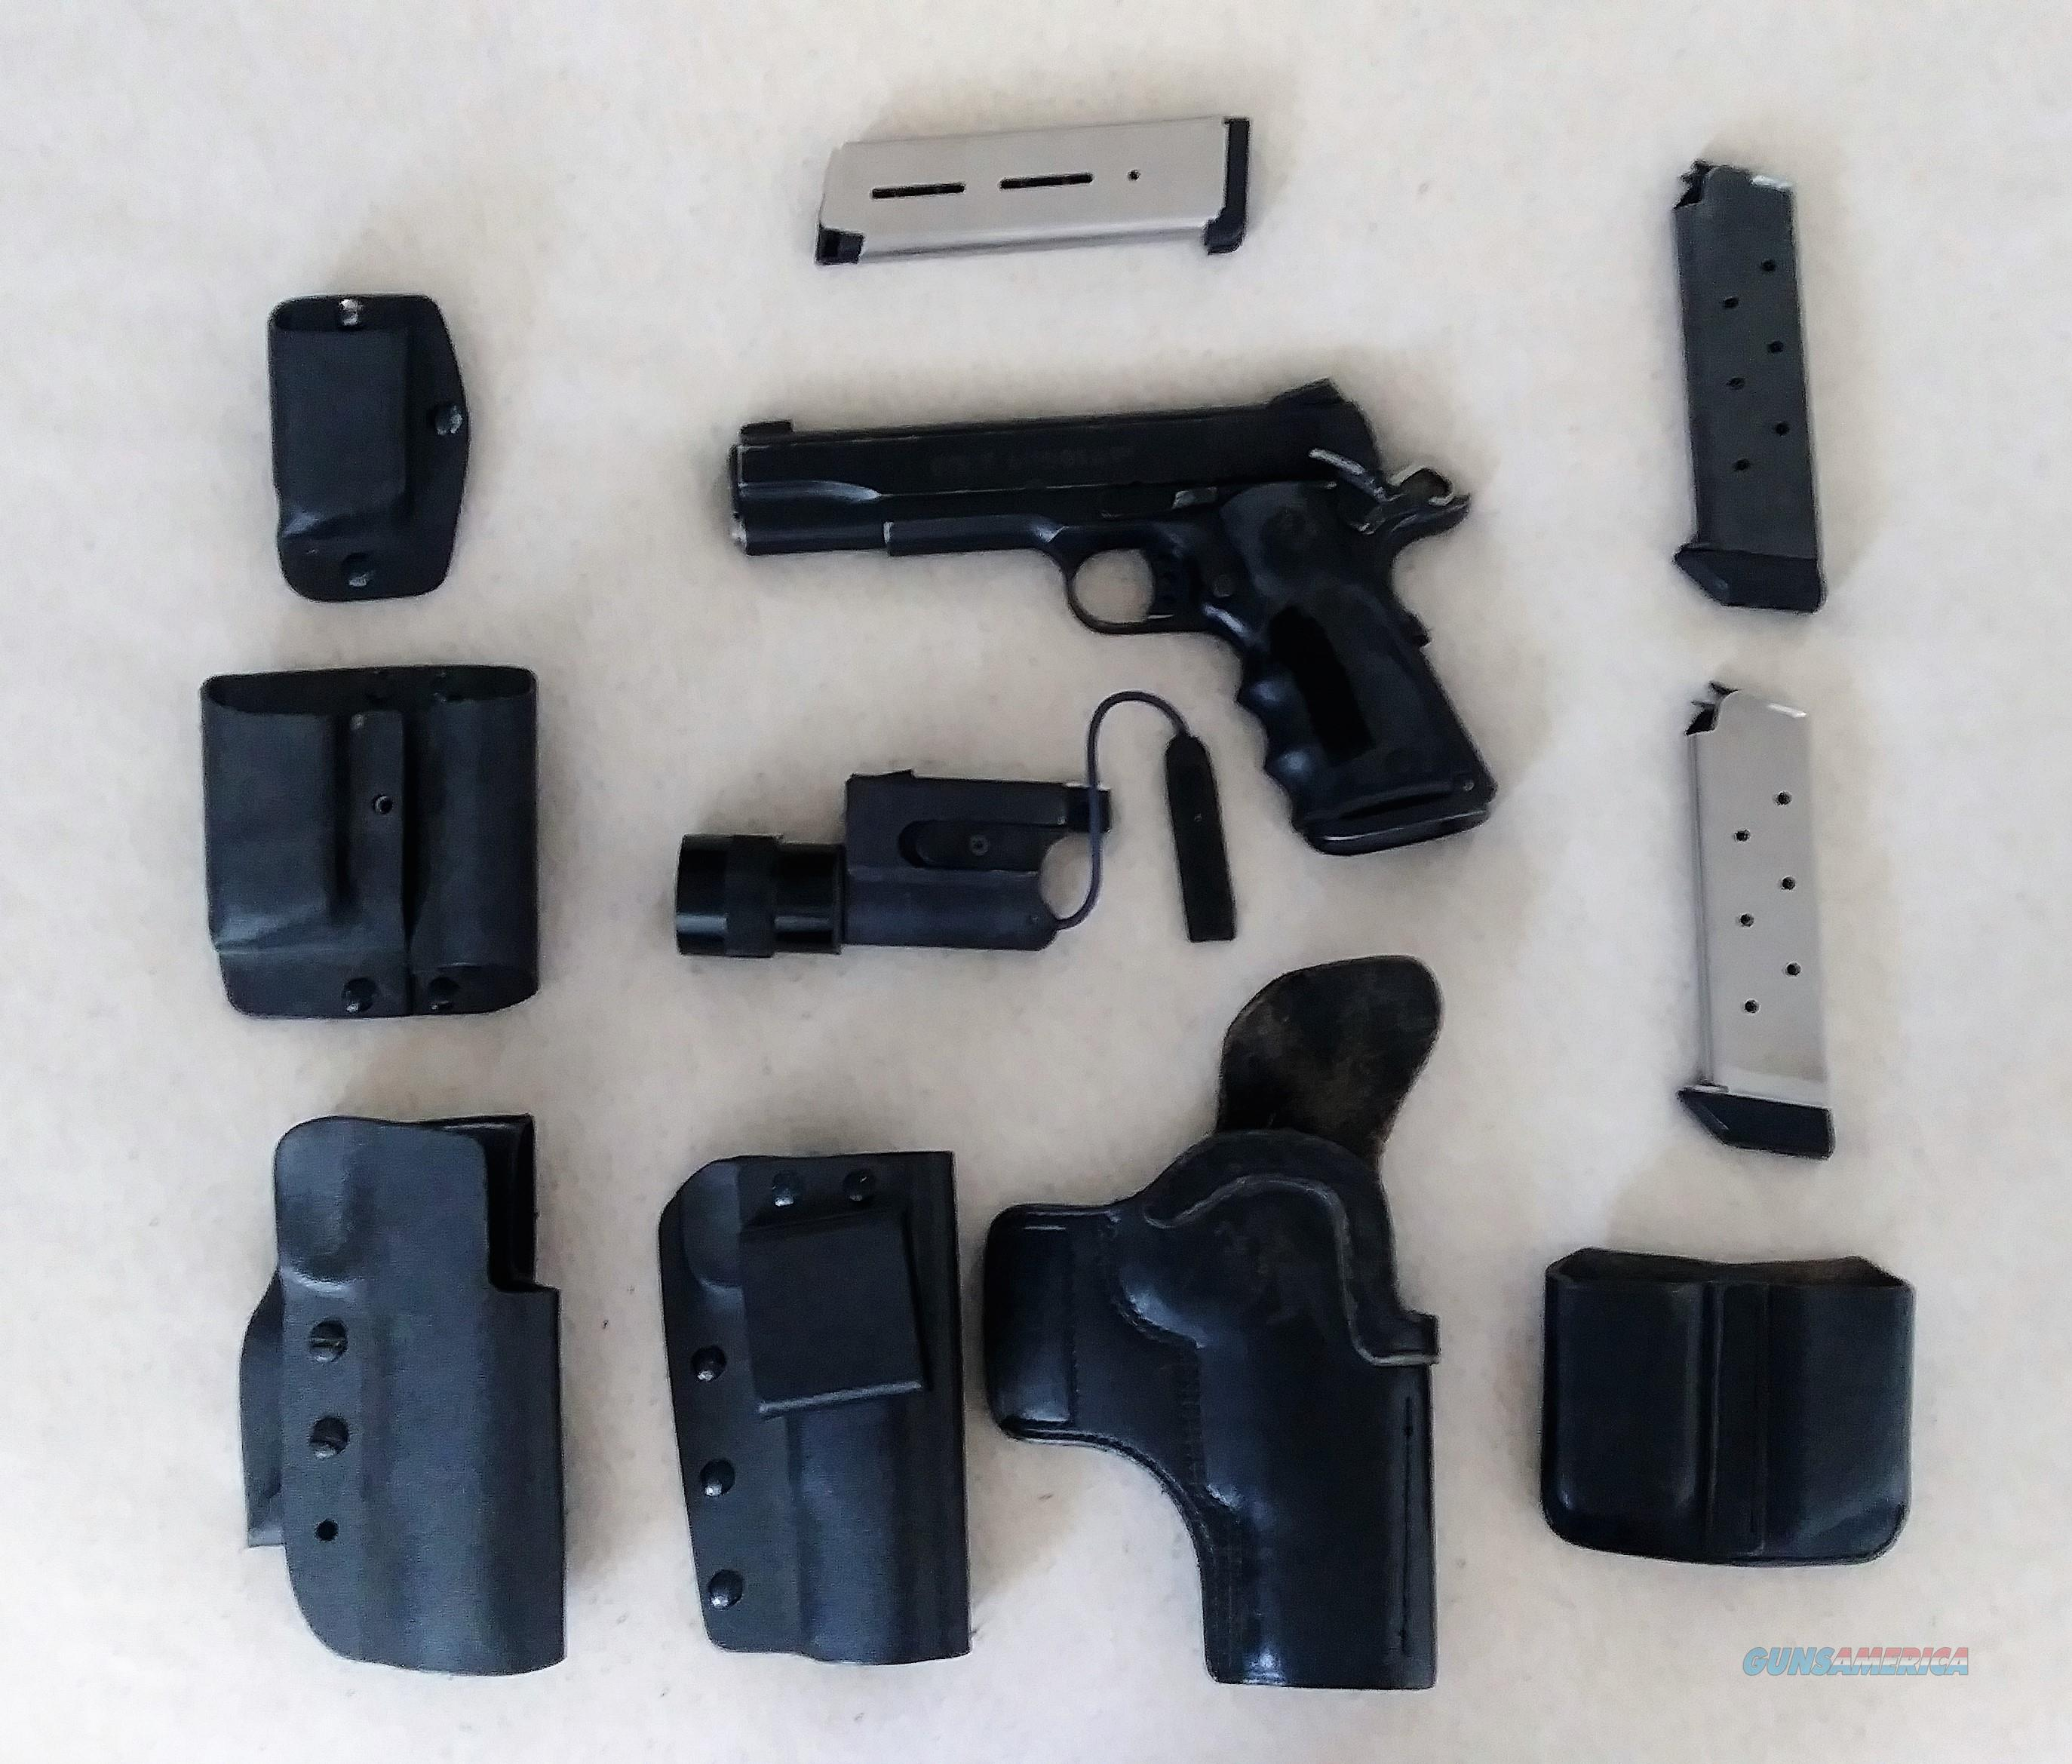 1911 Kydex and Leather Holsters, Mag pouches, Magazines, Surefire mounted  light